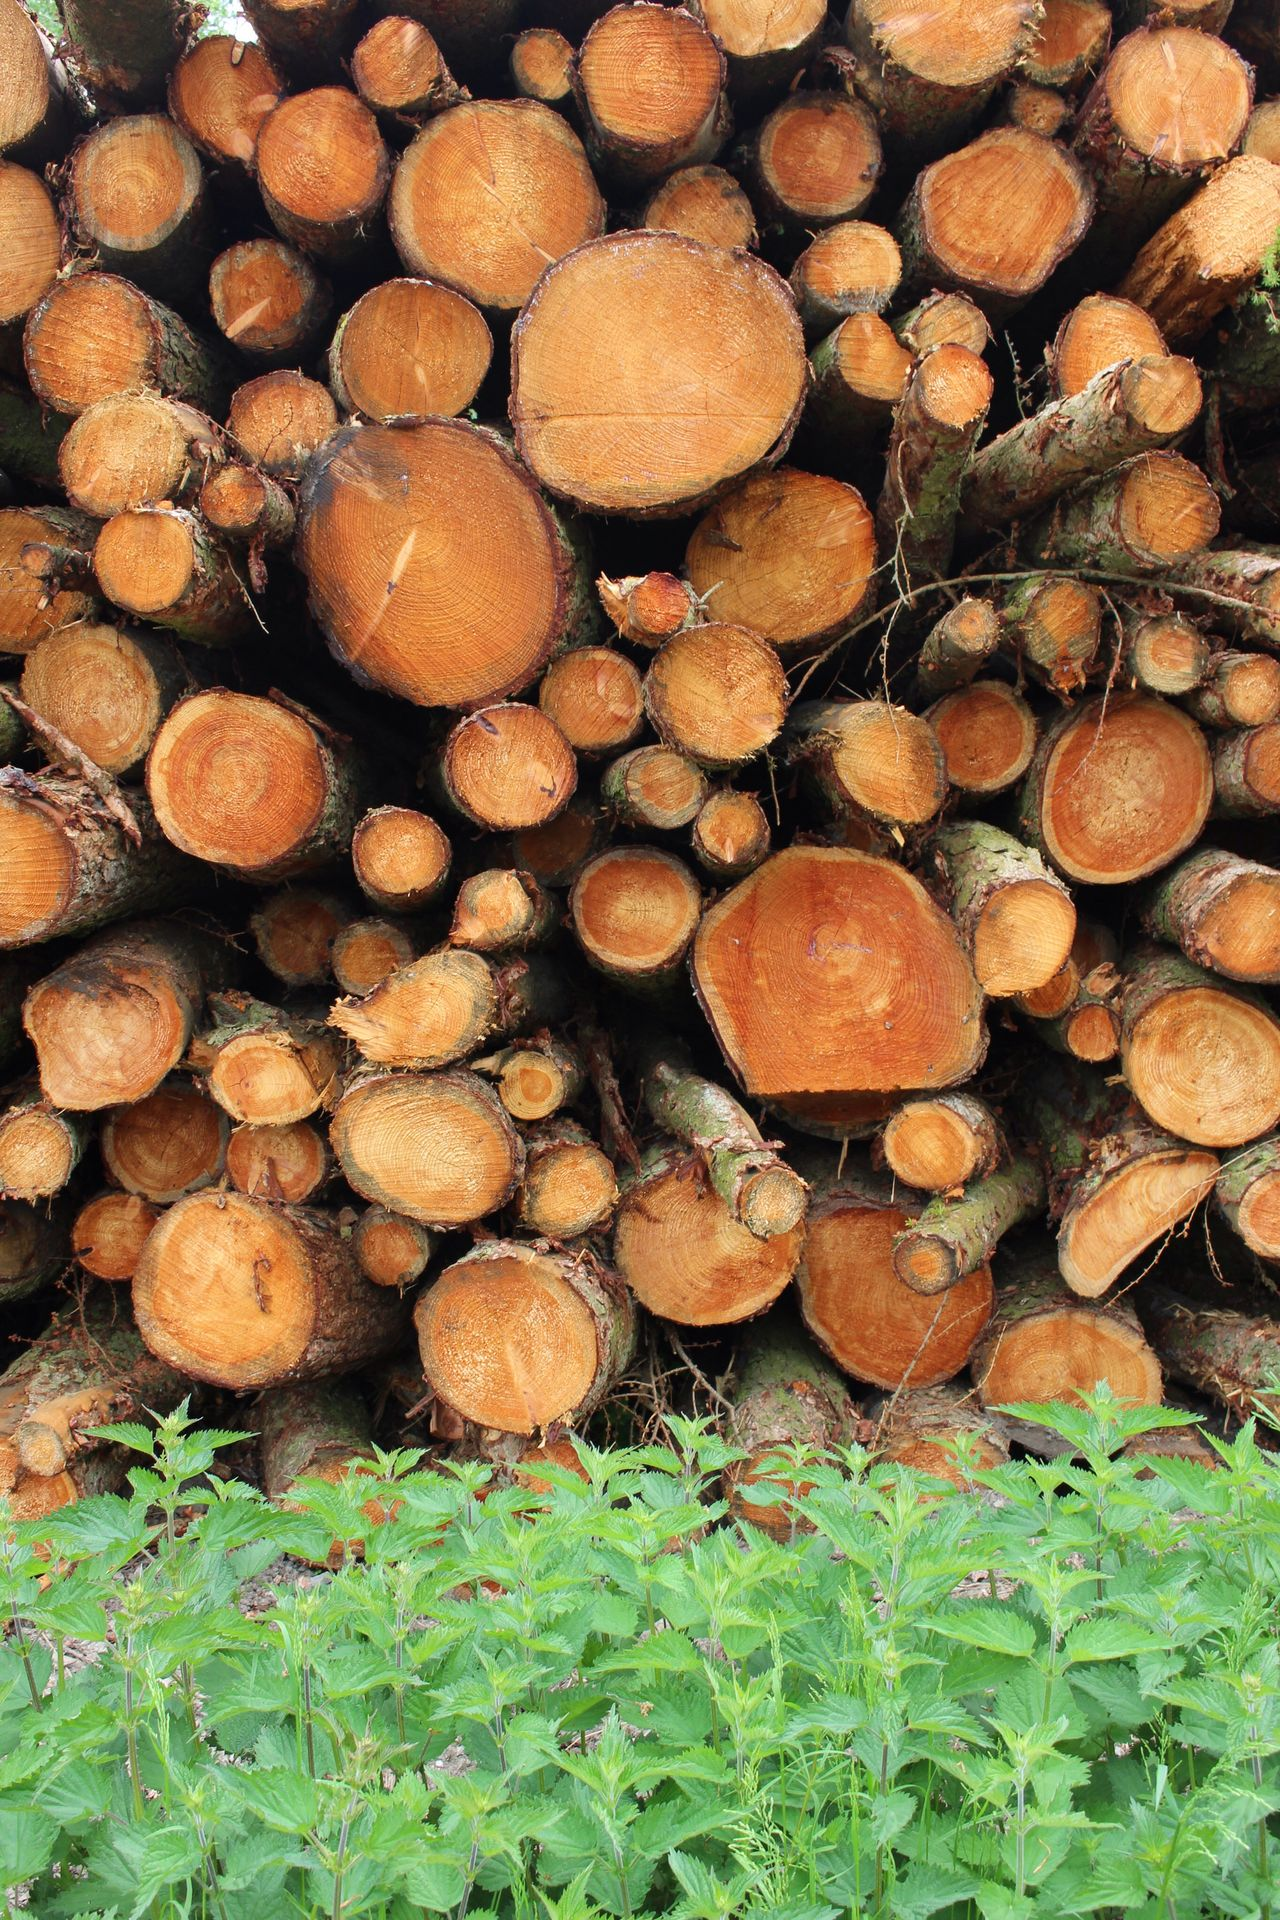 Contrast! Timber Log Firewood Stack Woodpile Lumber Industry Deforestation Forestry Industry Wood - Material Environmental Issues Heap Large Group Of Objects Abundance Fuel And Power Generation Pile Fossil Fuel Full Frame No People Backgrounds Day